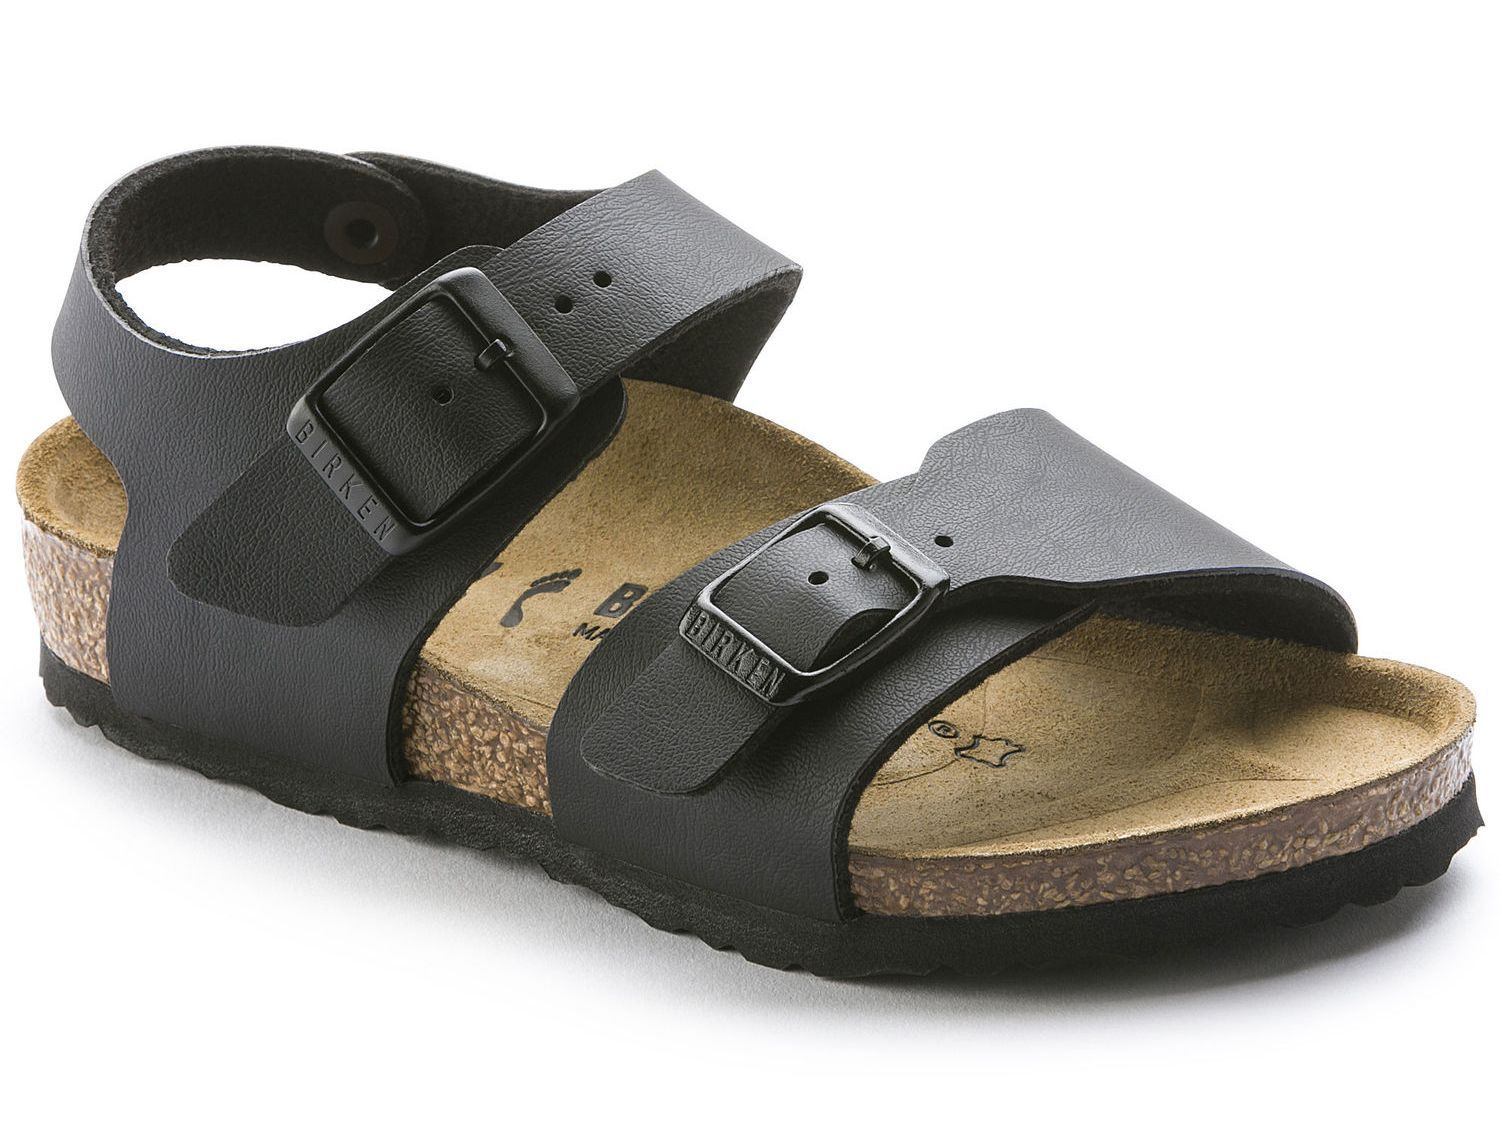 Birkenstock New York - Black Birko-Flor